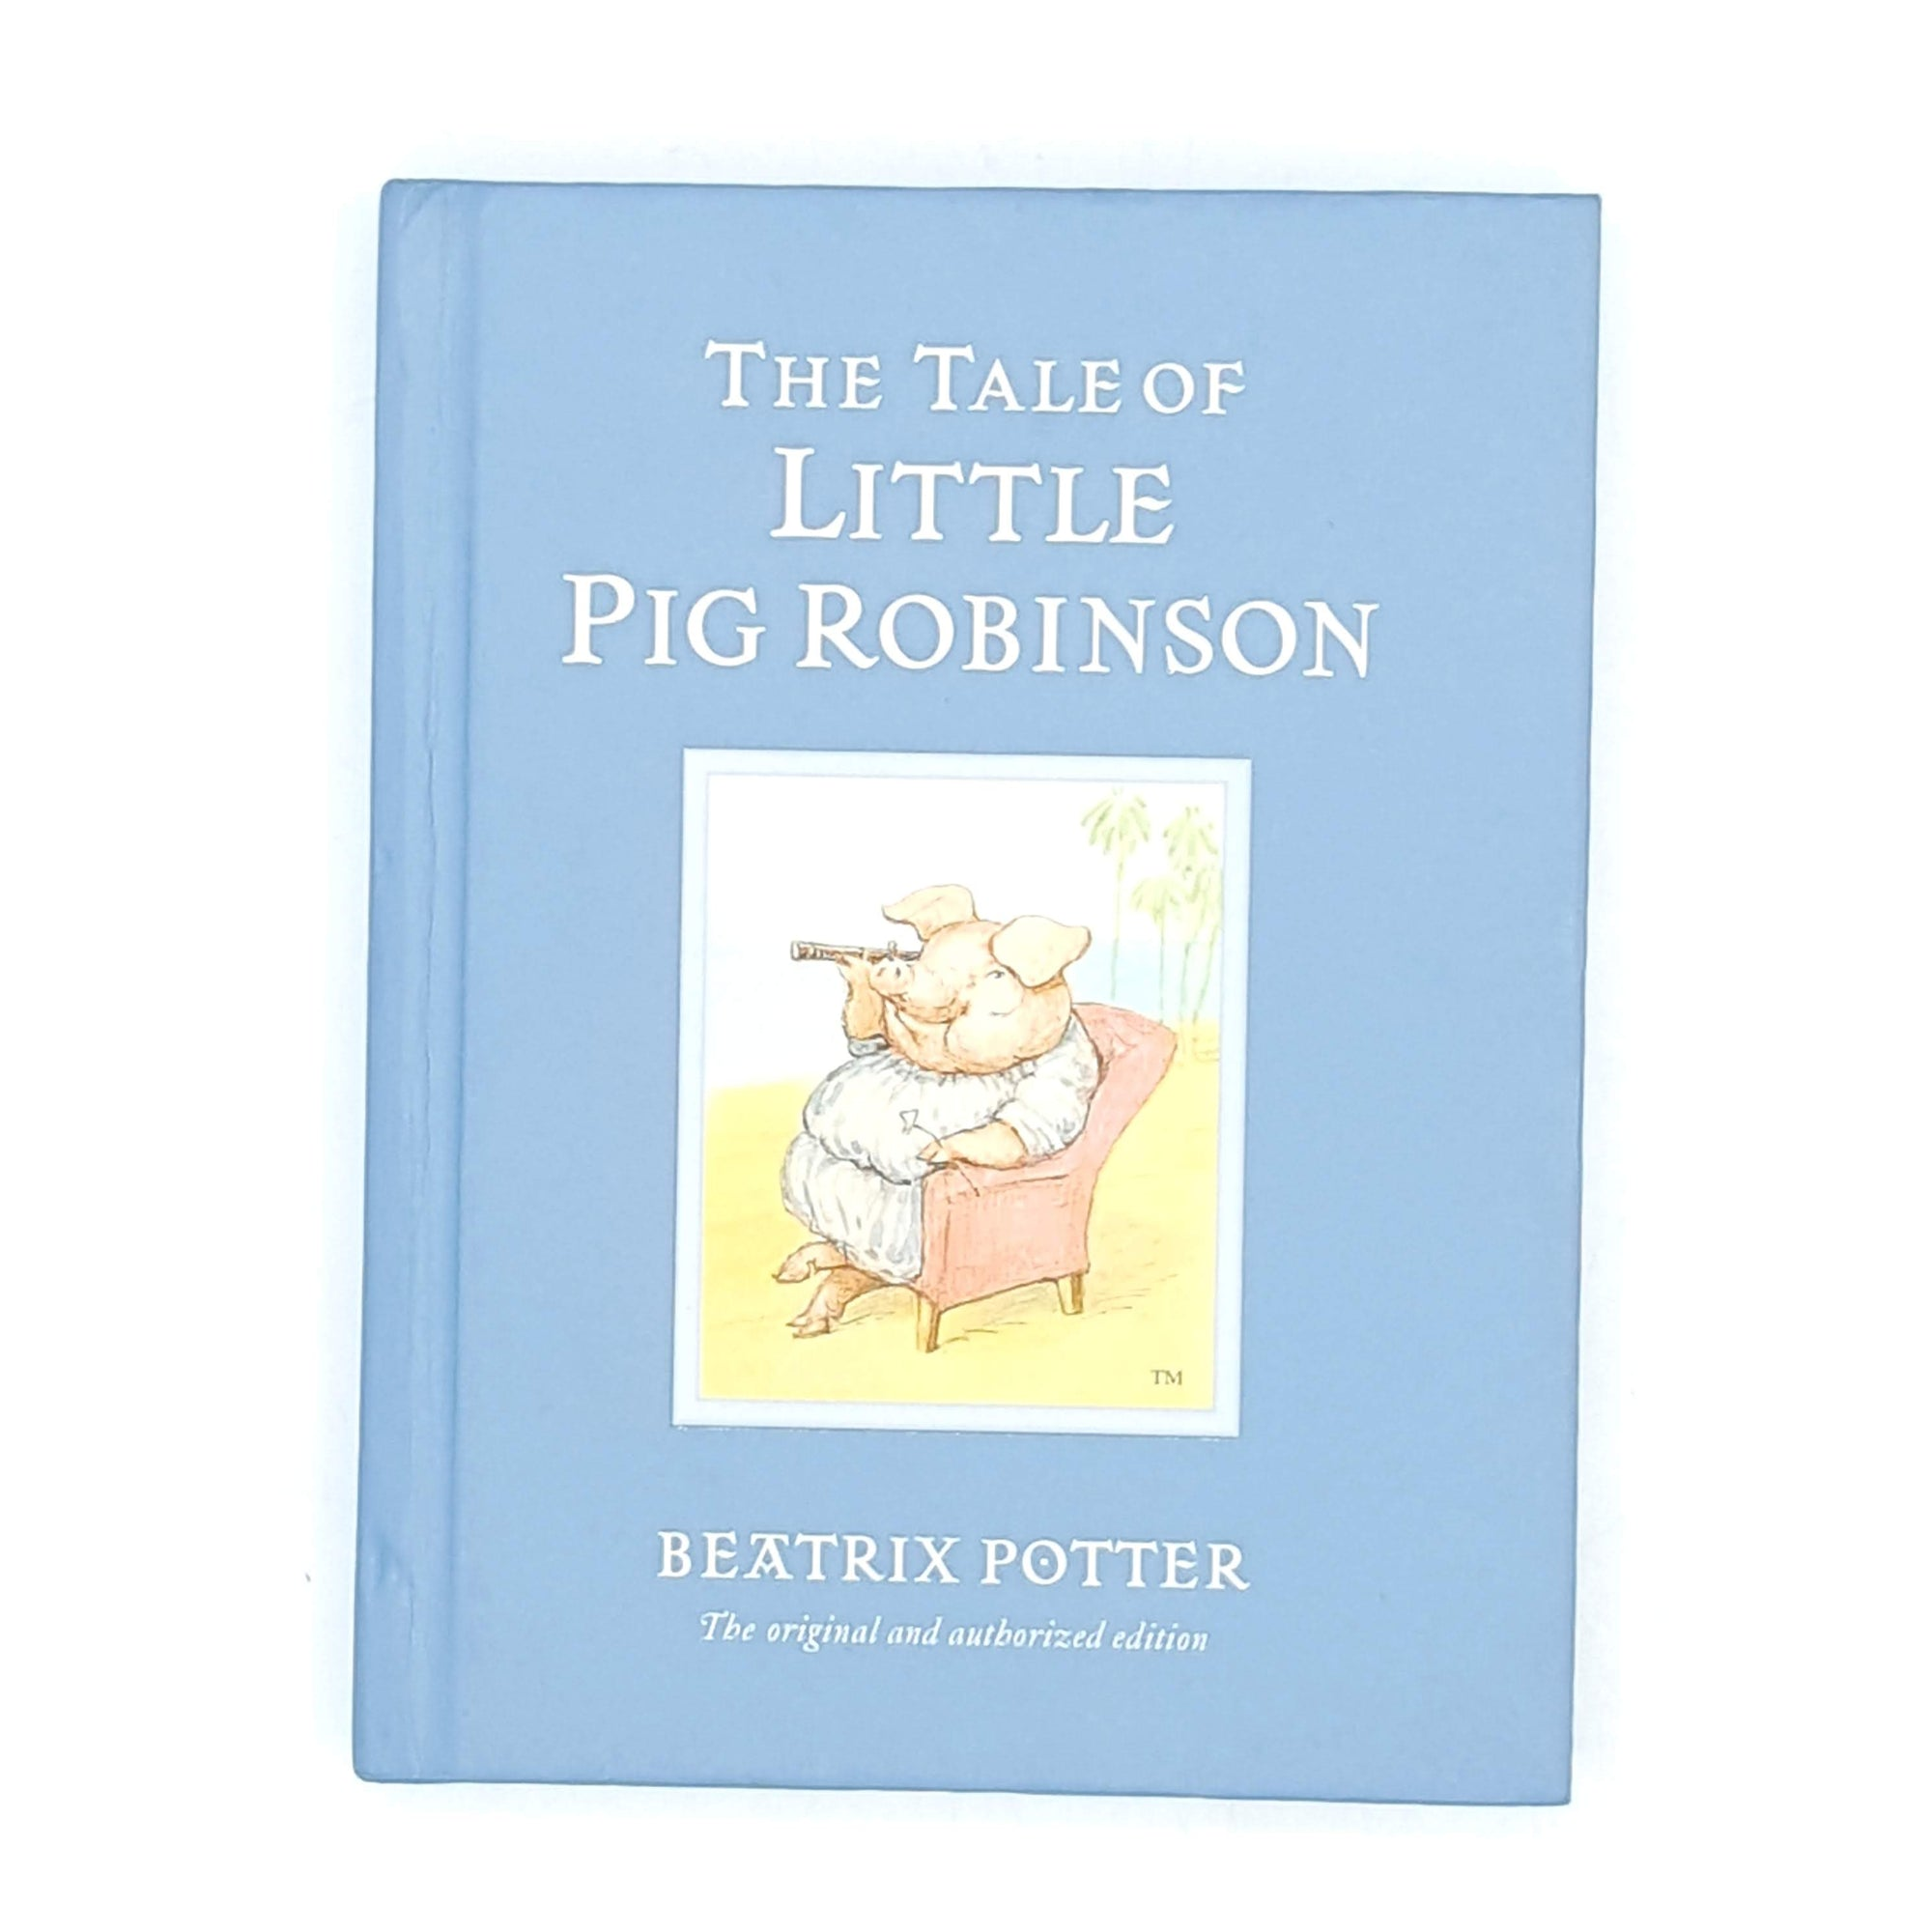 decorative-vintage-blue-country-house-library-little-pig-robinson-old-thrift-illustrated-patterned-childrens-antique-books-classic-beatrix-potter-